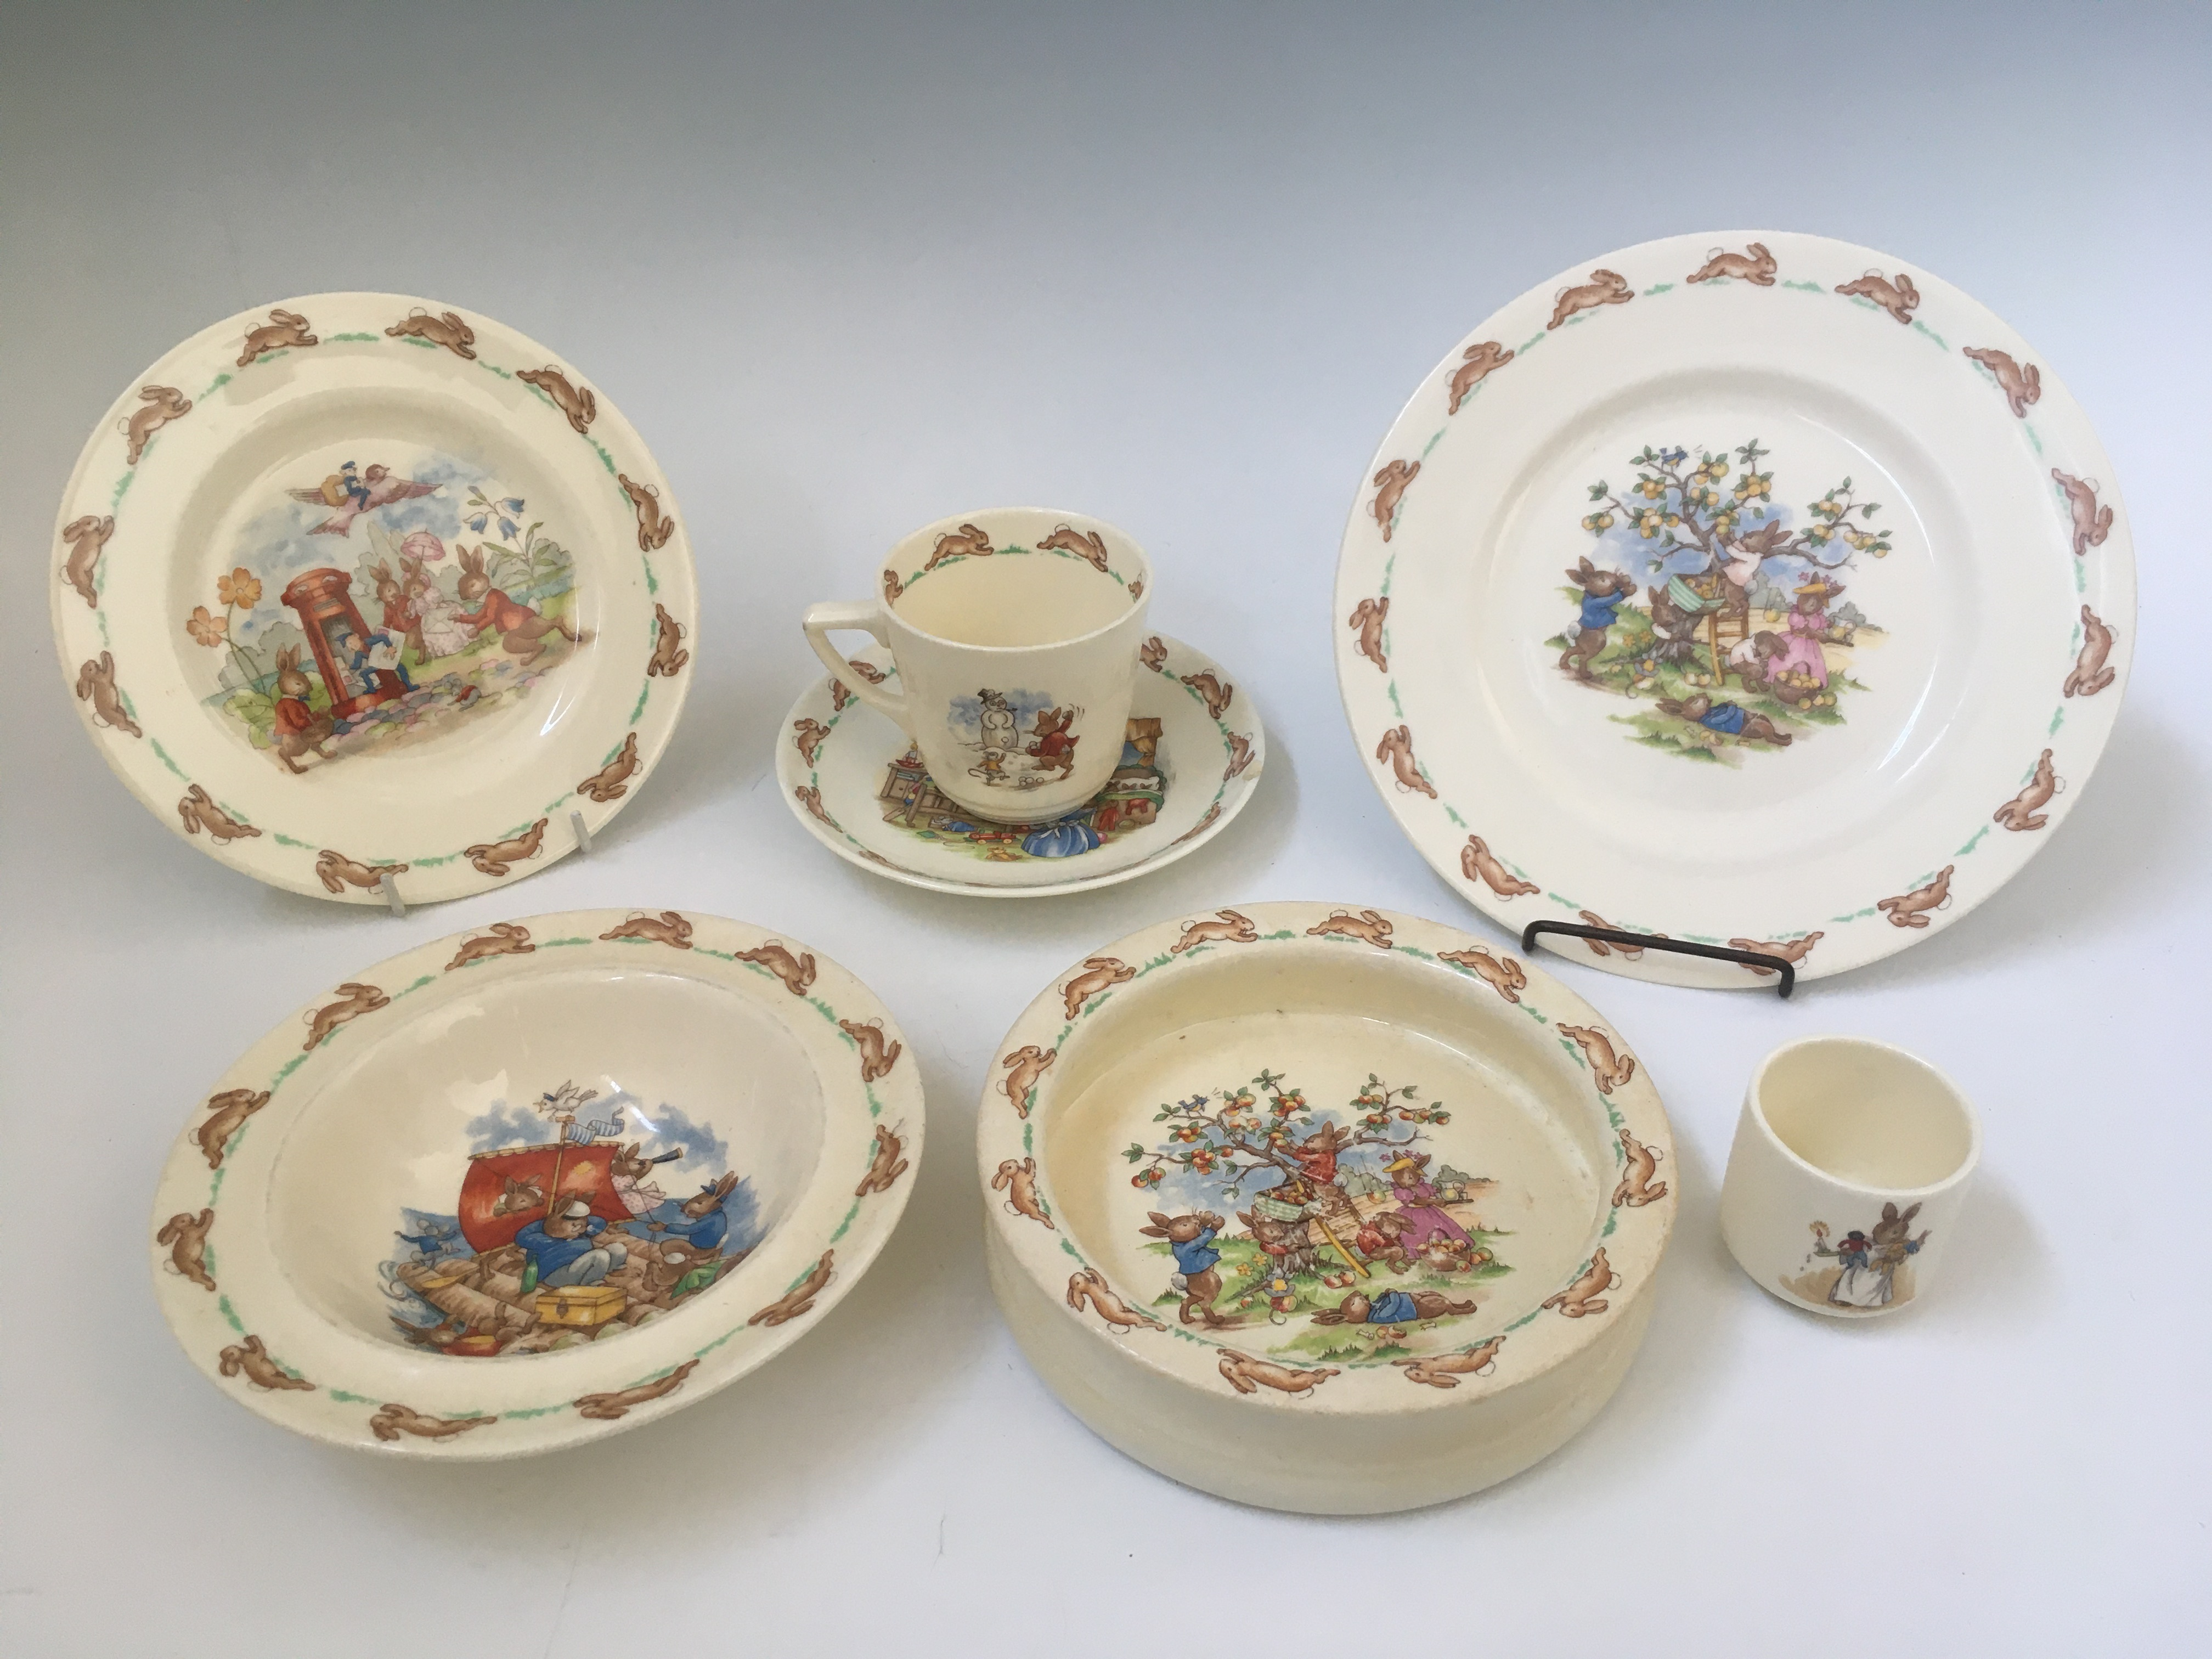 A part Royal Doulton Bunnykins breakfast set, to include cup, bowls, eggcup, seven pieces in